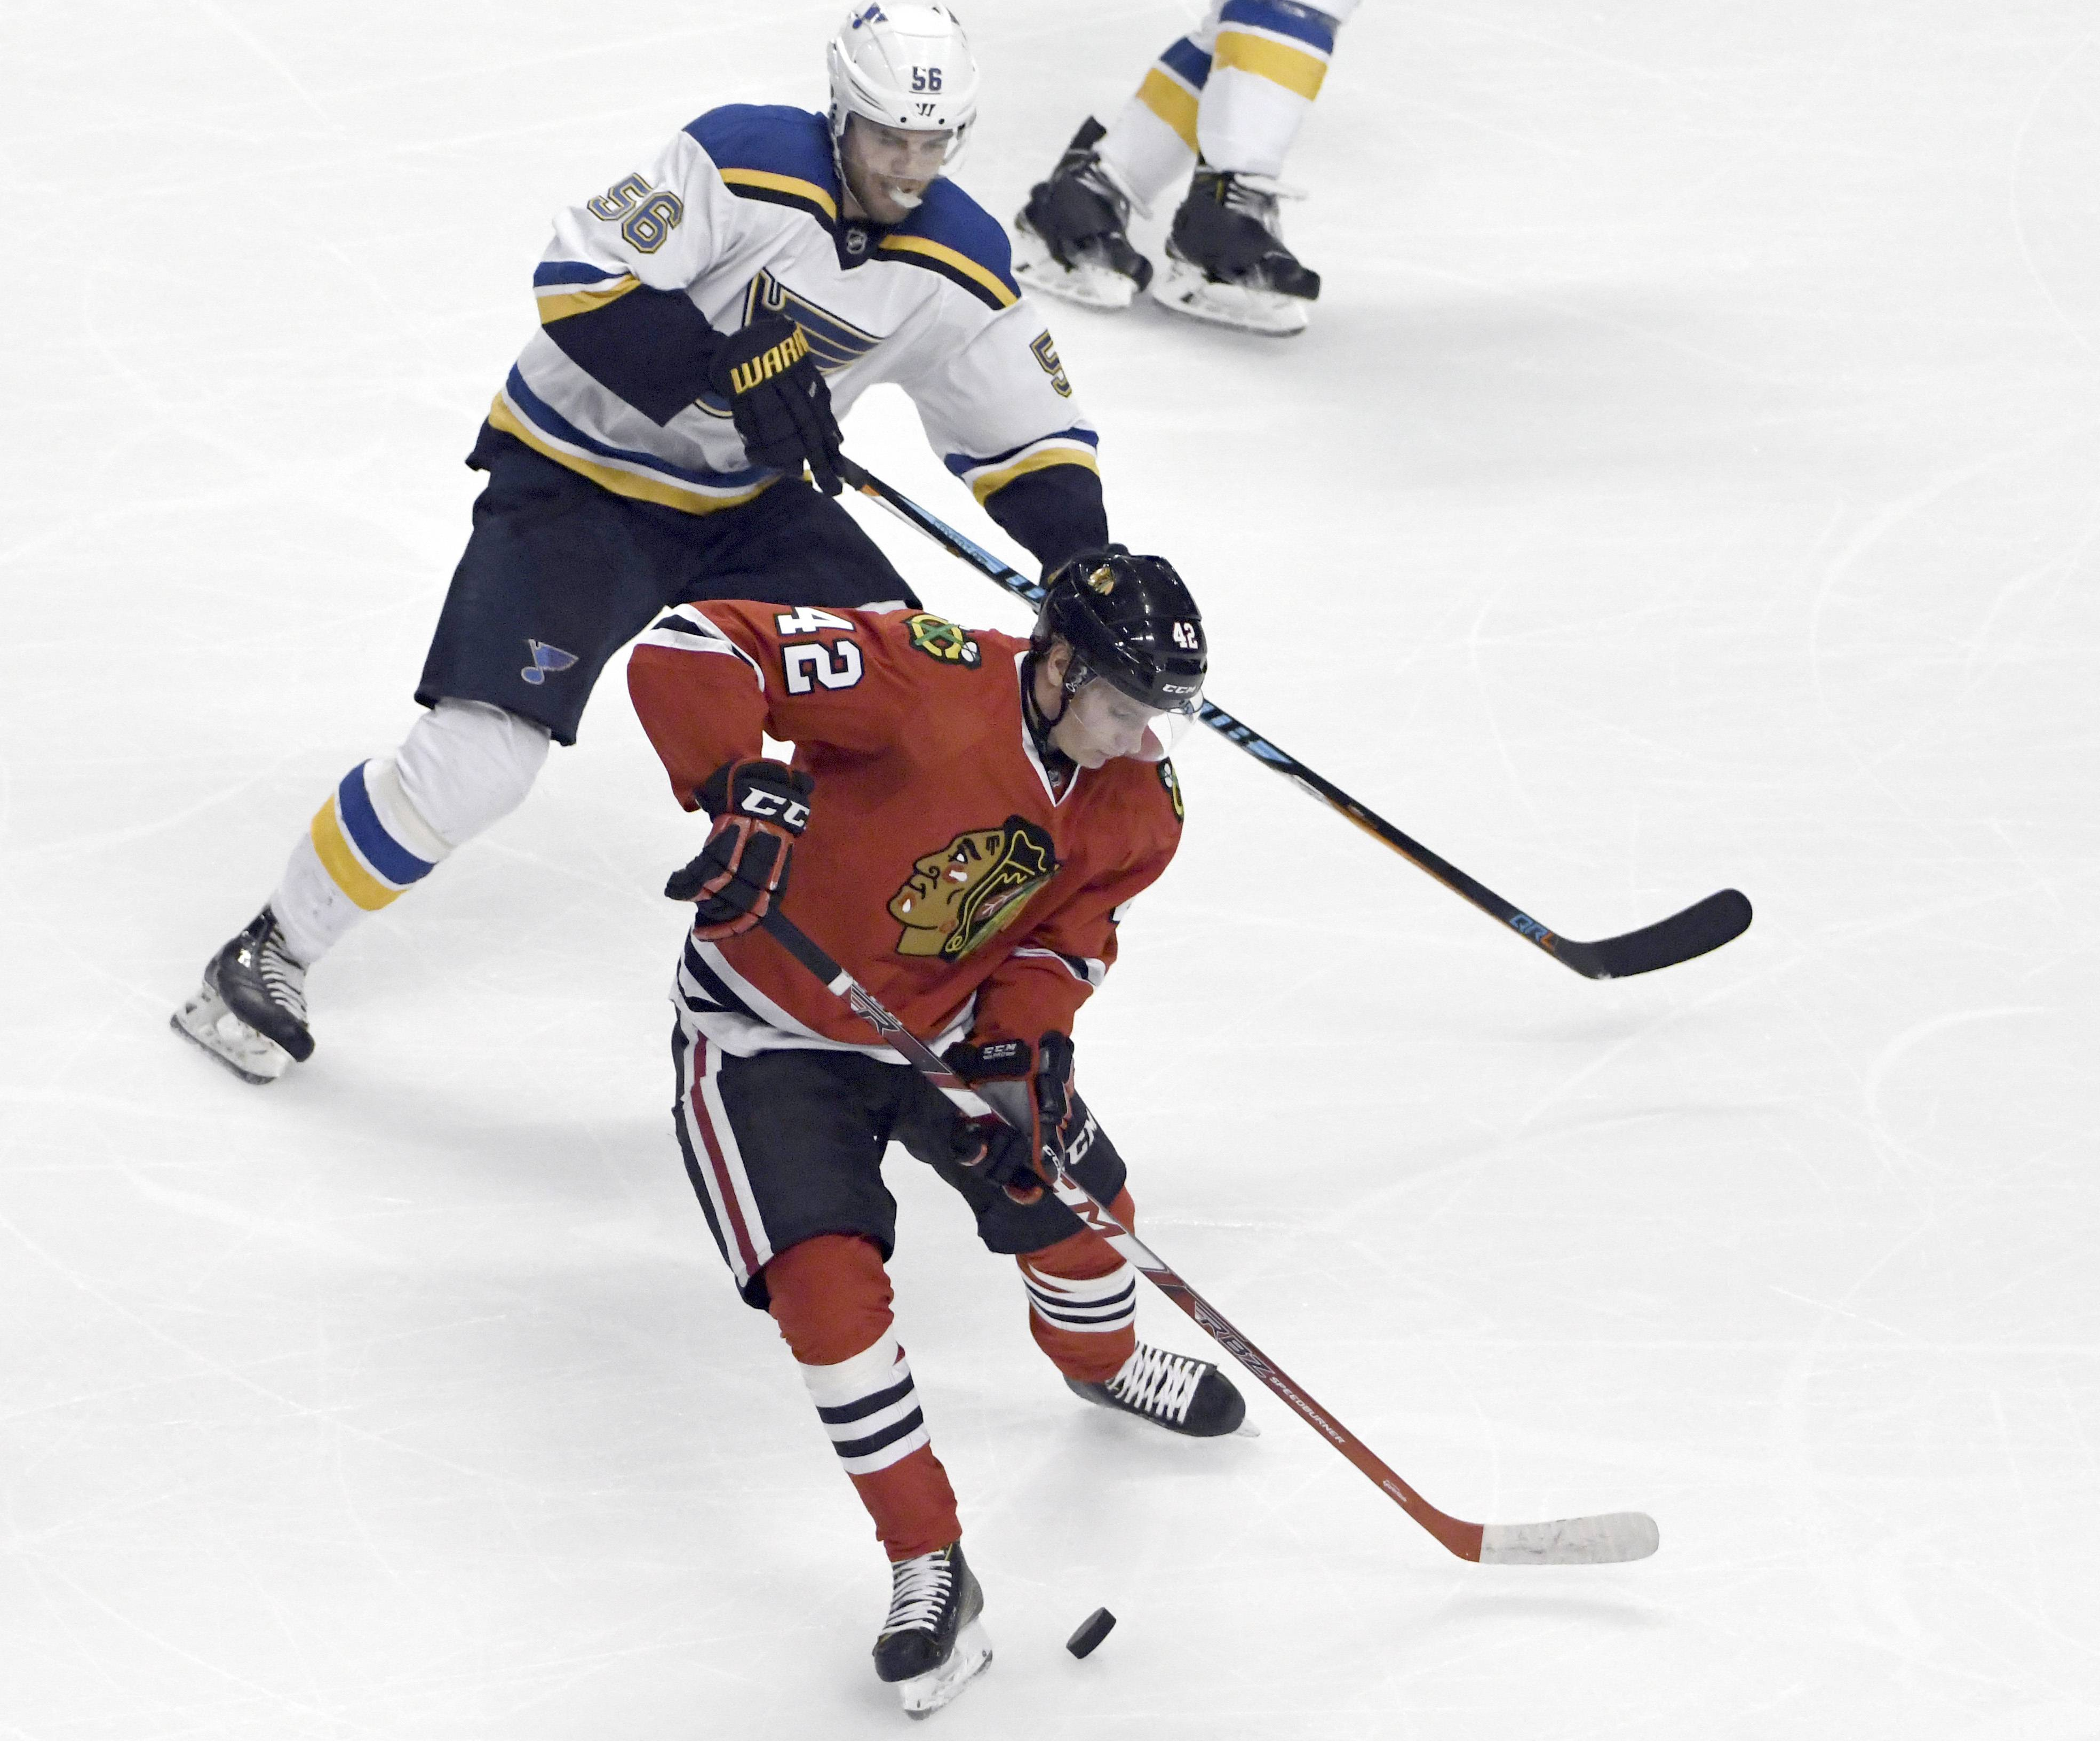 With about a week left in Blackhawks training camp, there's a fierce battle for the final few defensemen spots. Gustav Forsling had a typical rookie season in 2016-17, showing he was capable at times but also proving to be a liability.